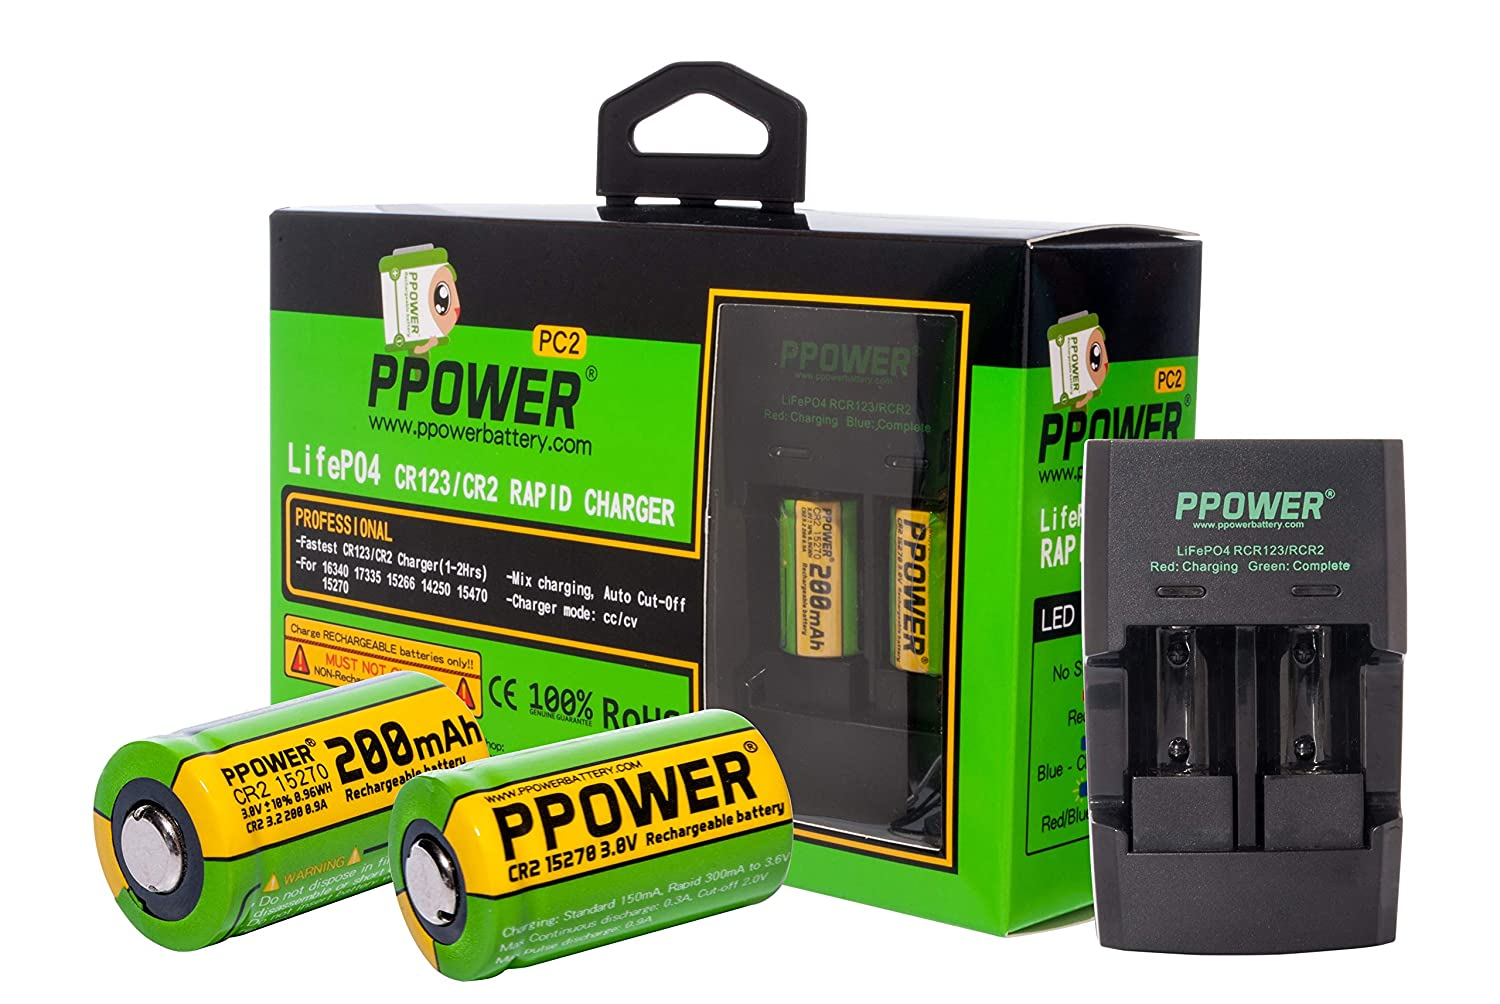 2x Ppower 3v Real Capacity 200 Mah Cr2 15270 15266 12v Nicad Battery Charger 200ma H Rechargeable Lifepo4 Batteries Rapid For Lithium Car